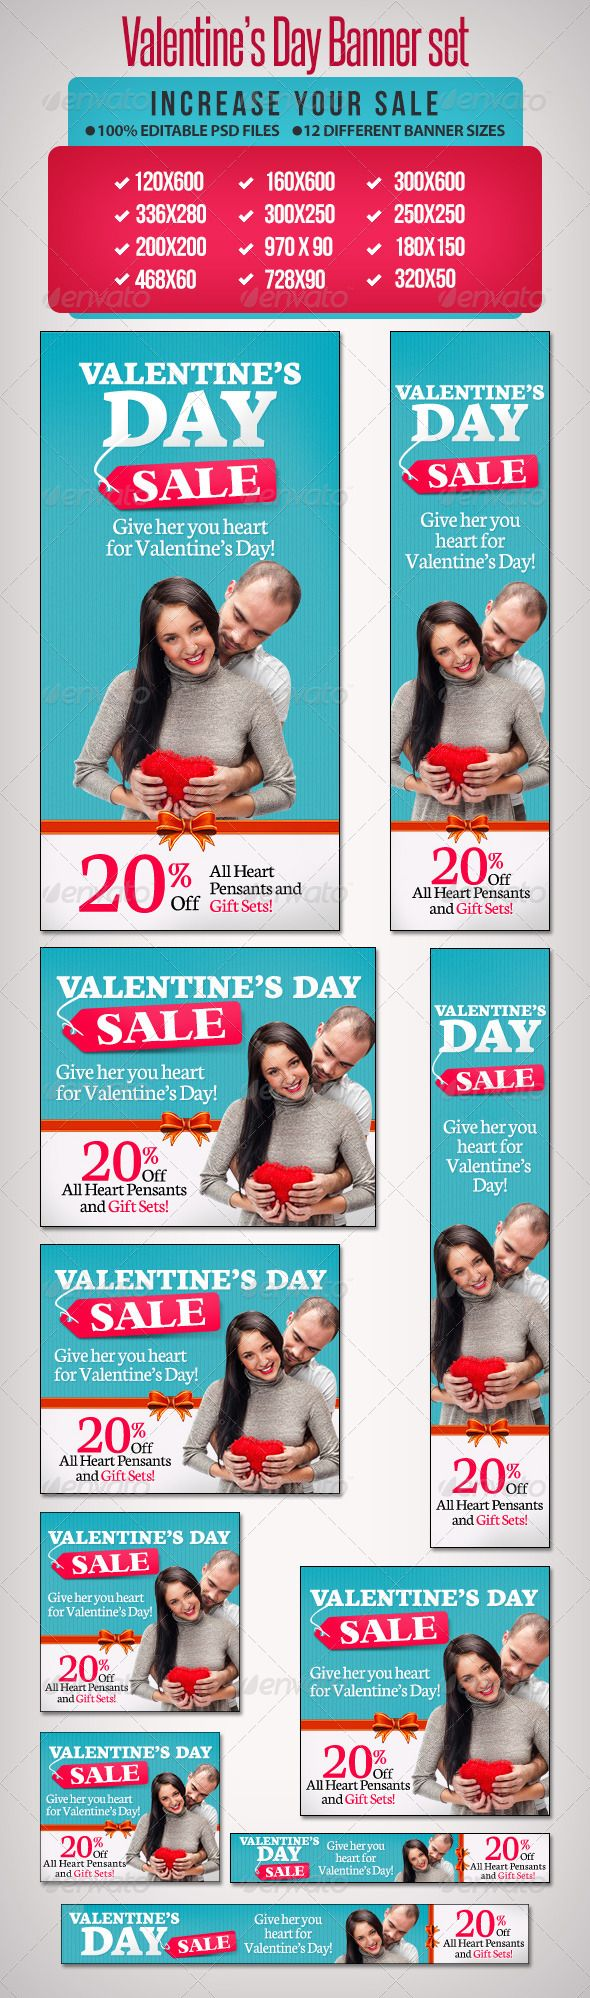 Valentine's Day Web Banner Set Template PSD | Buy and Download: http://graphicriver.net/item/-valentines-day-banner-set-4/6598648?WT.ac=category_thumb&WT.z_author=BannerDesignCo&ref=ksioks